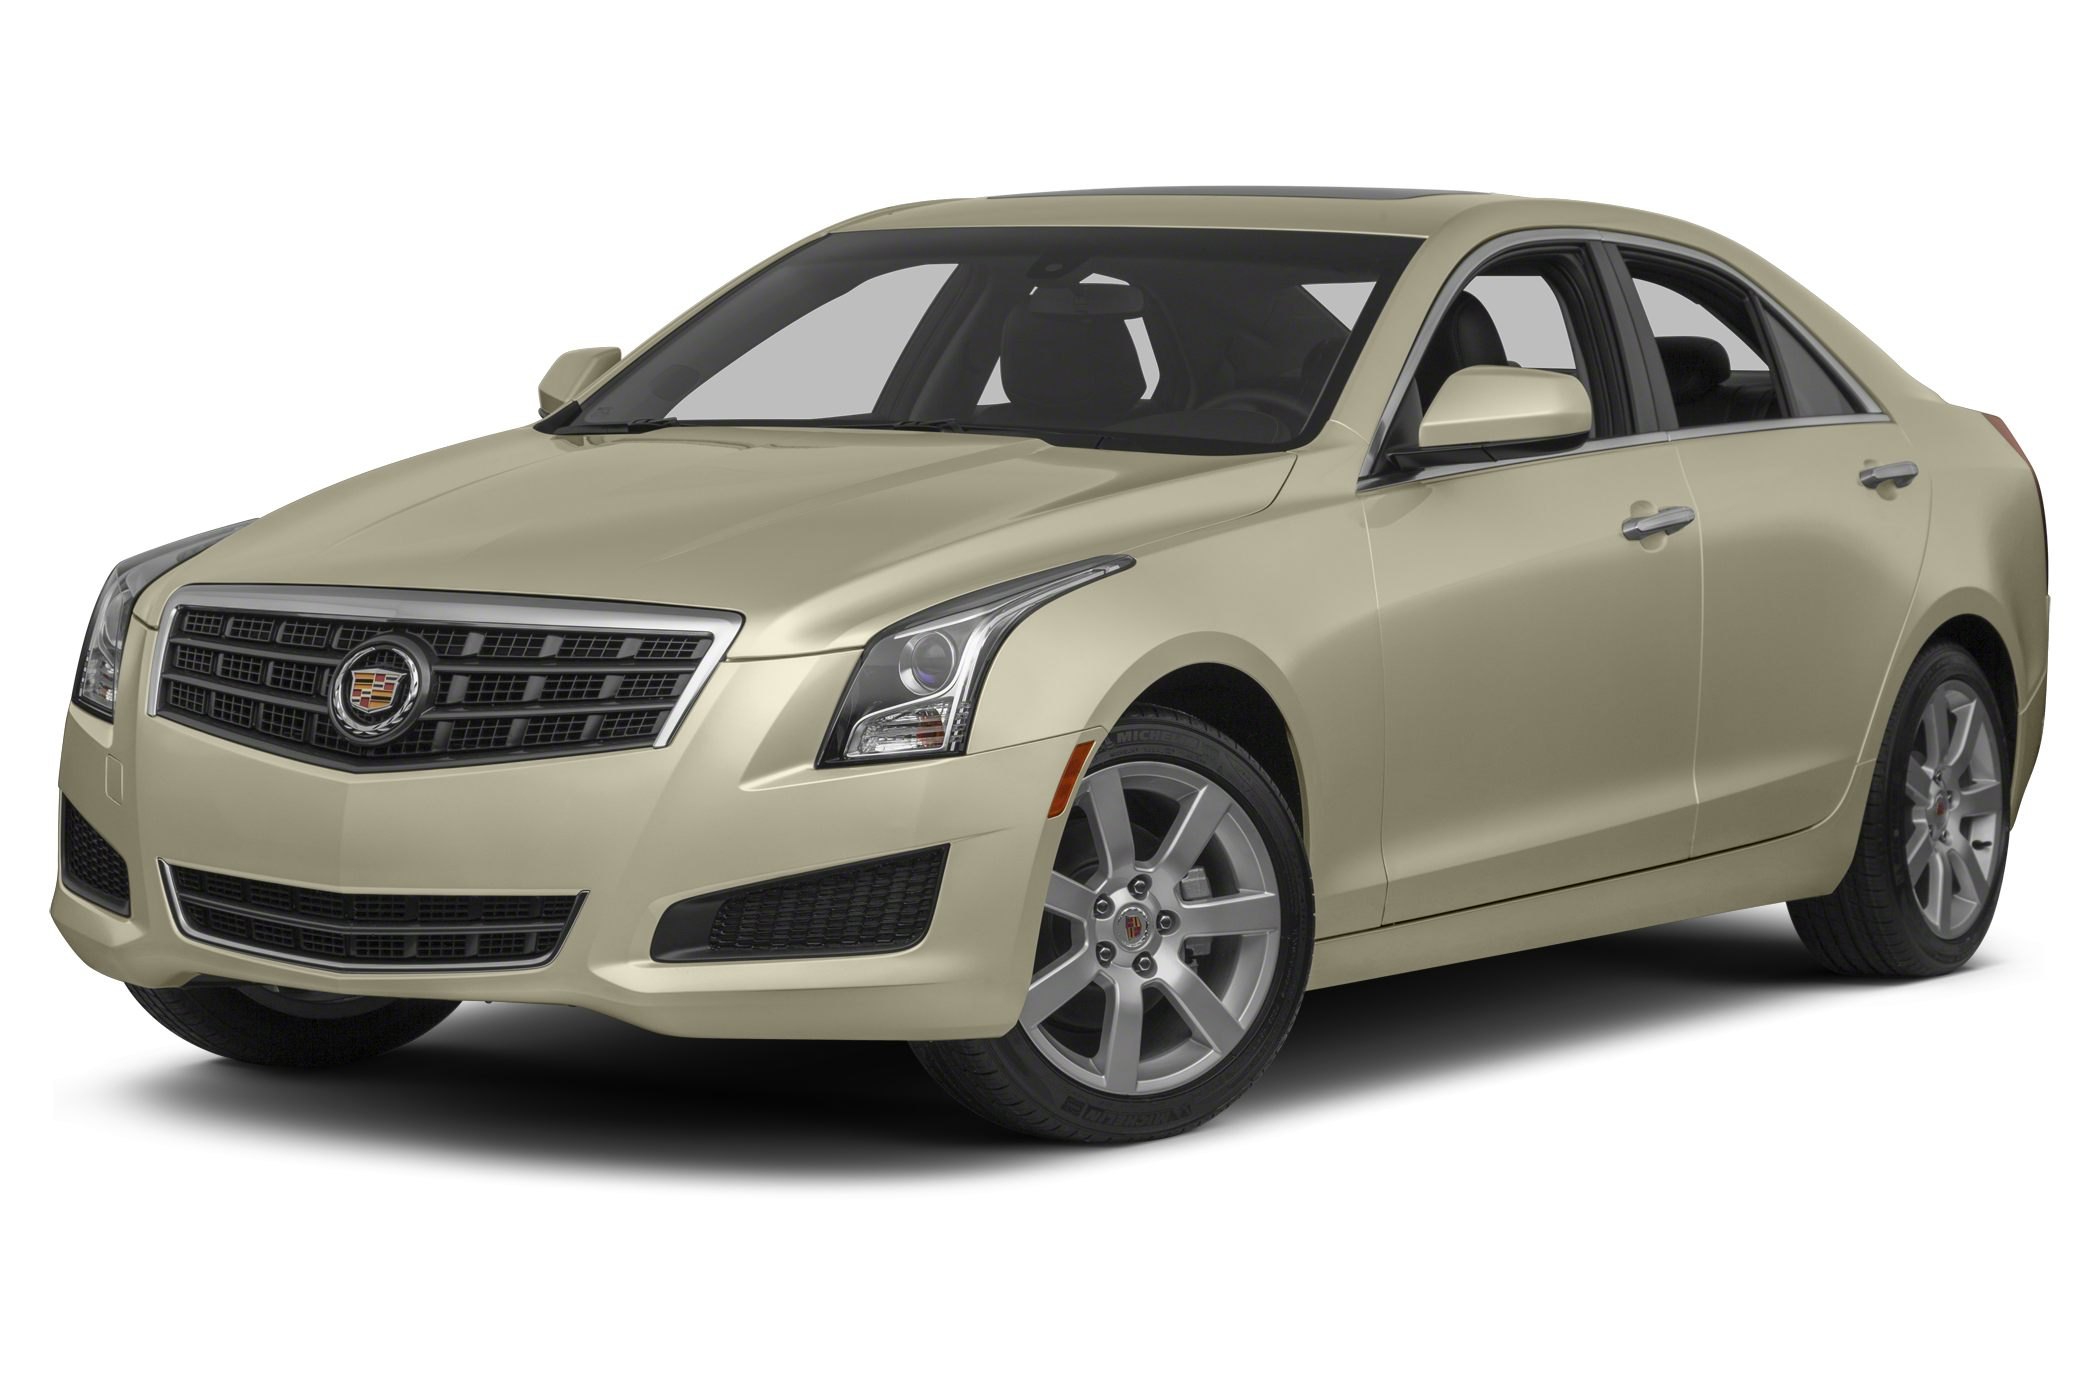 specs photos ats s makes news radka blog car cadillac